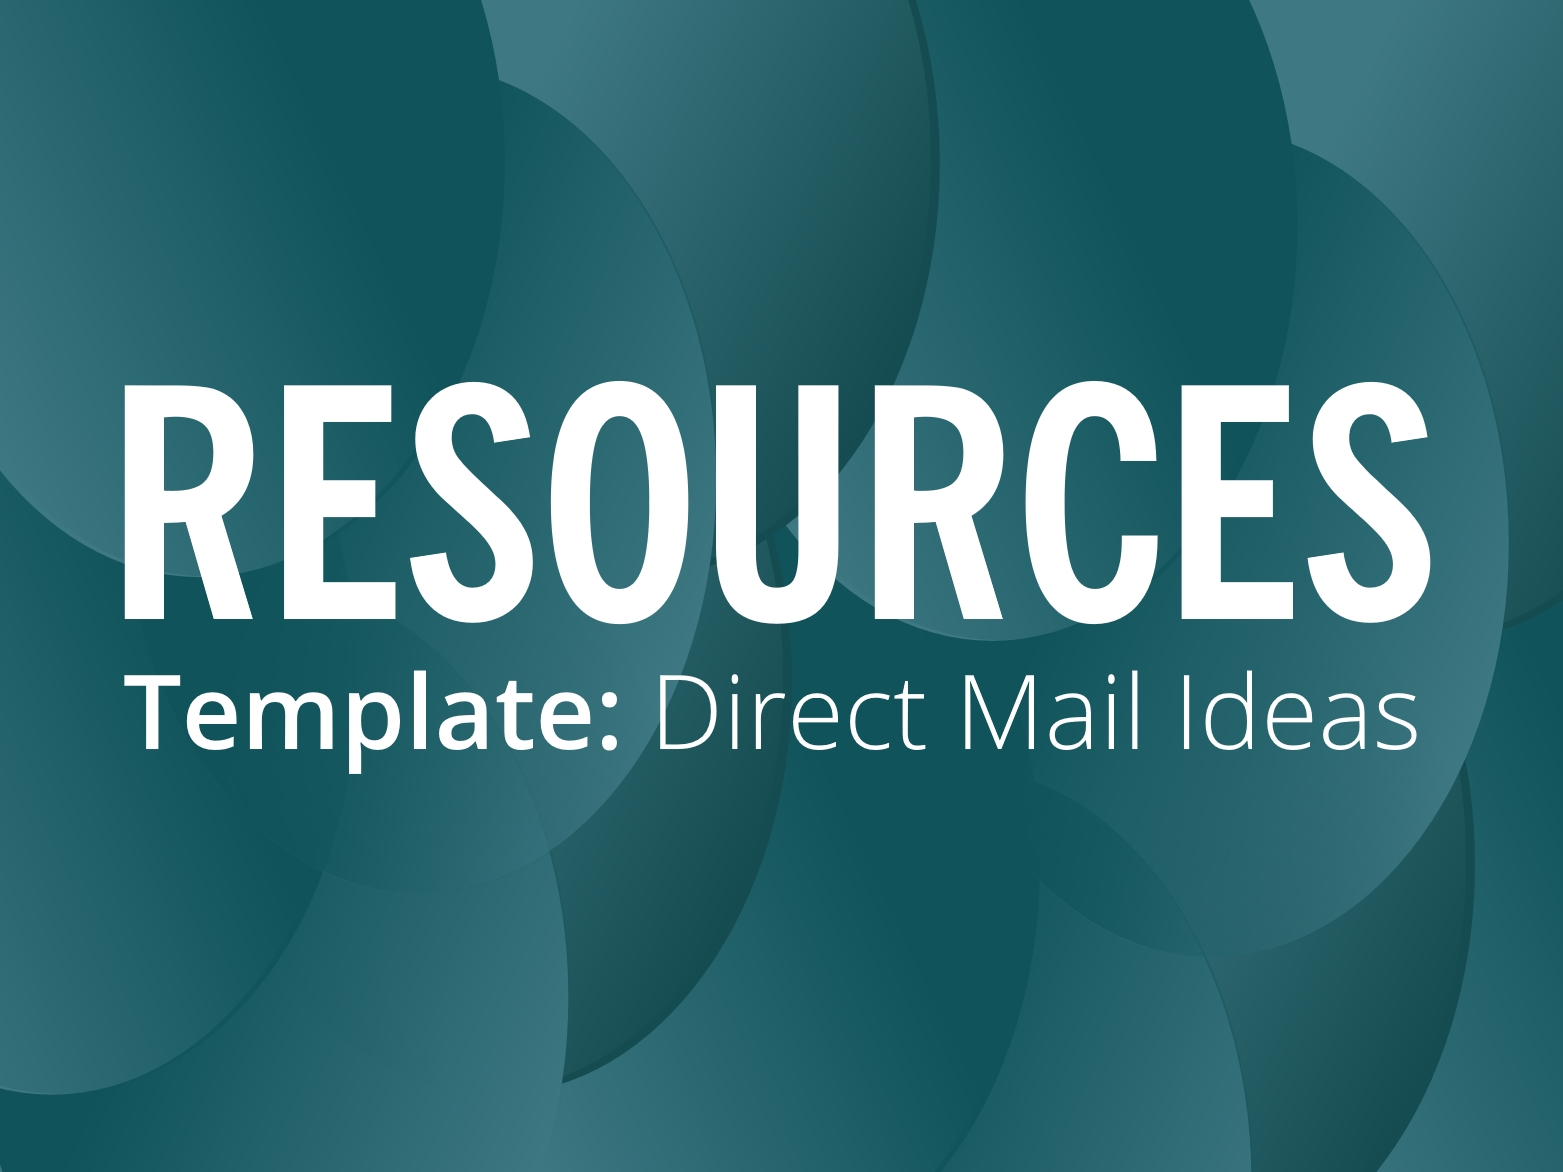 RESOURCES: Template direct mail